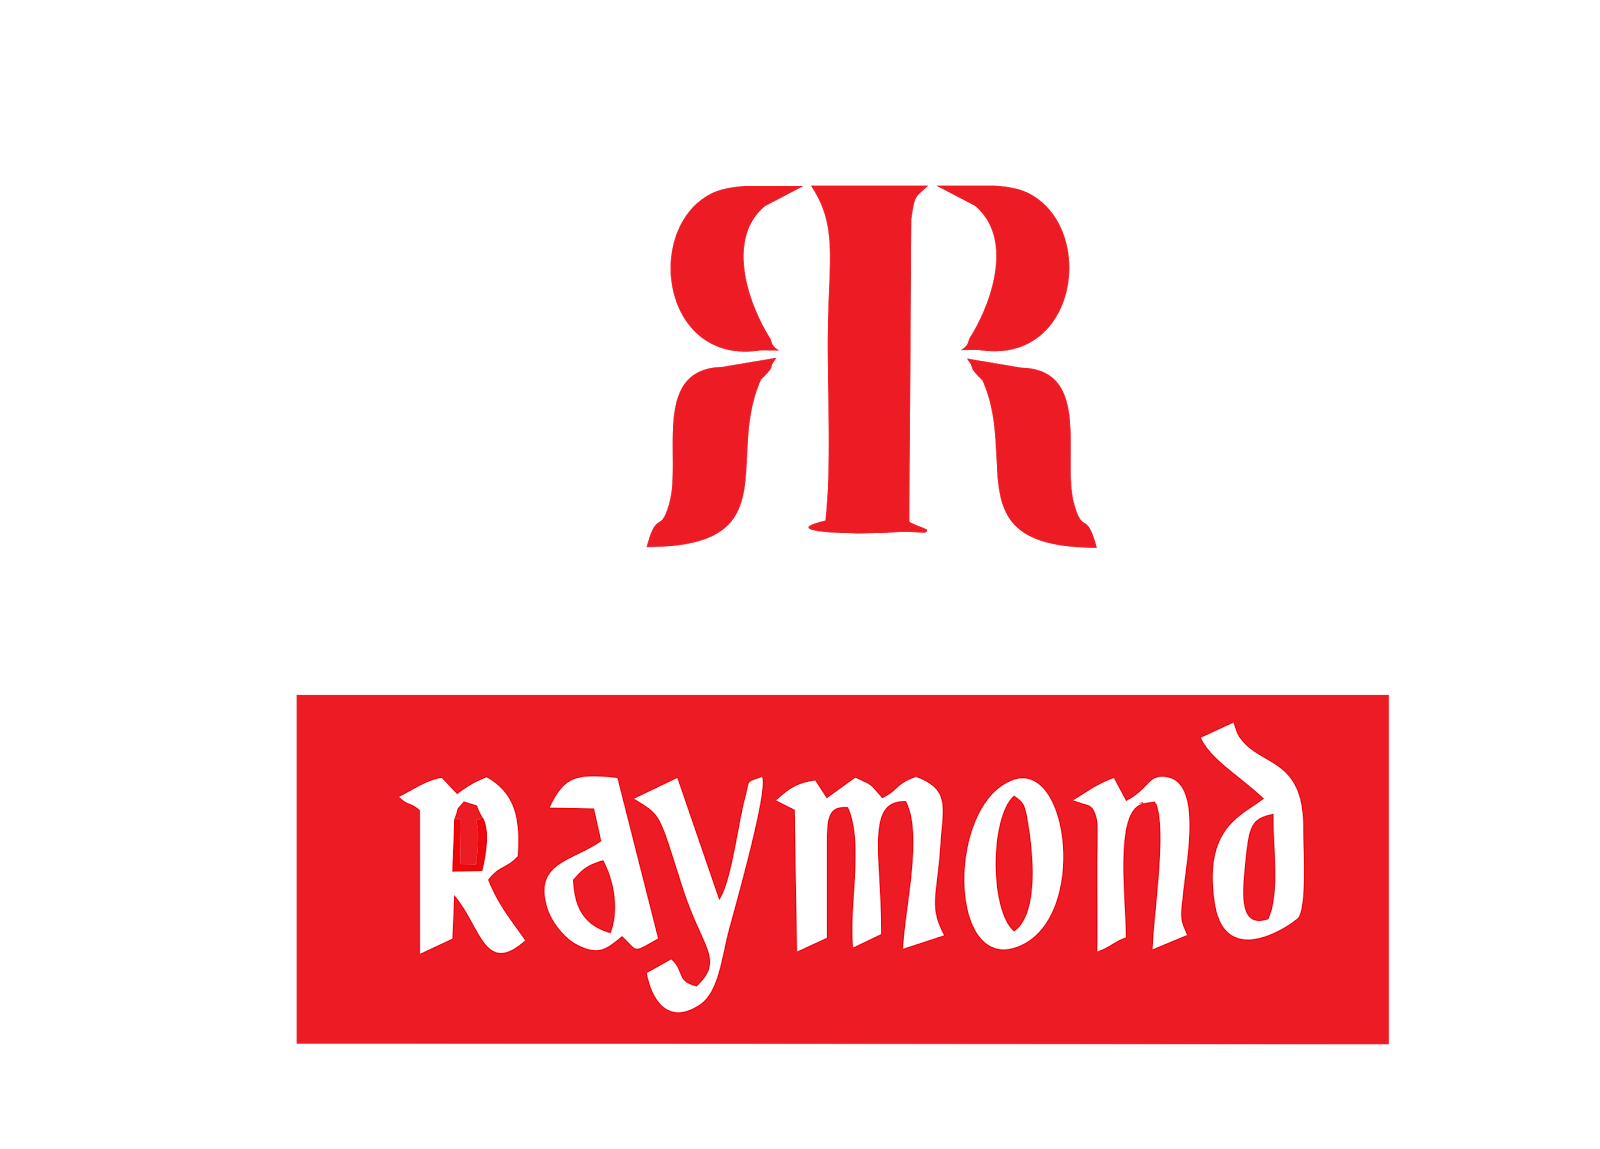 RAYMONDS 'RAYMONDS: THE COMPLETE MAN' COMMERCIAL Review ...